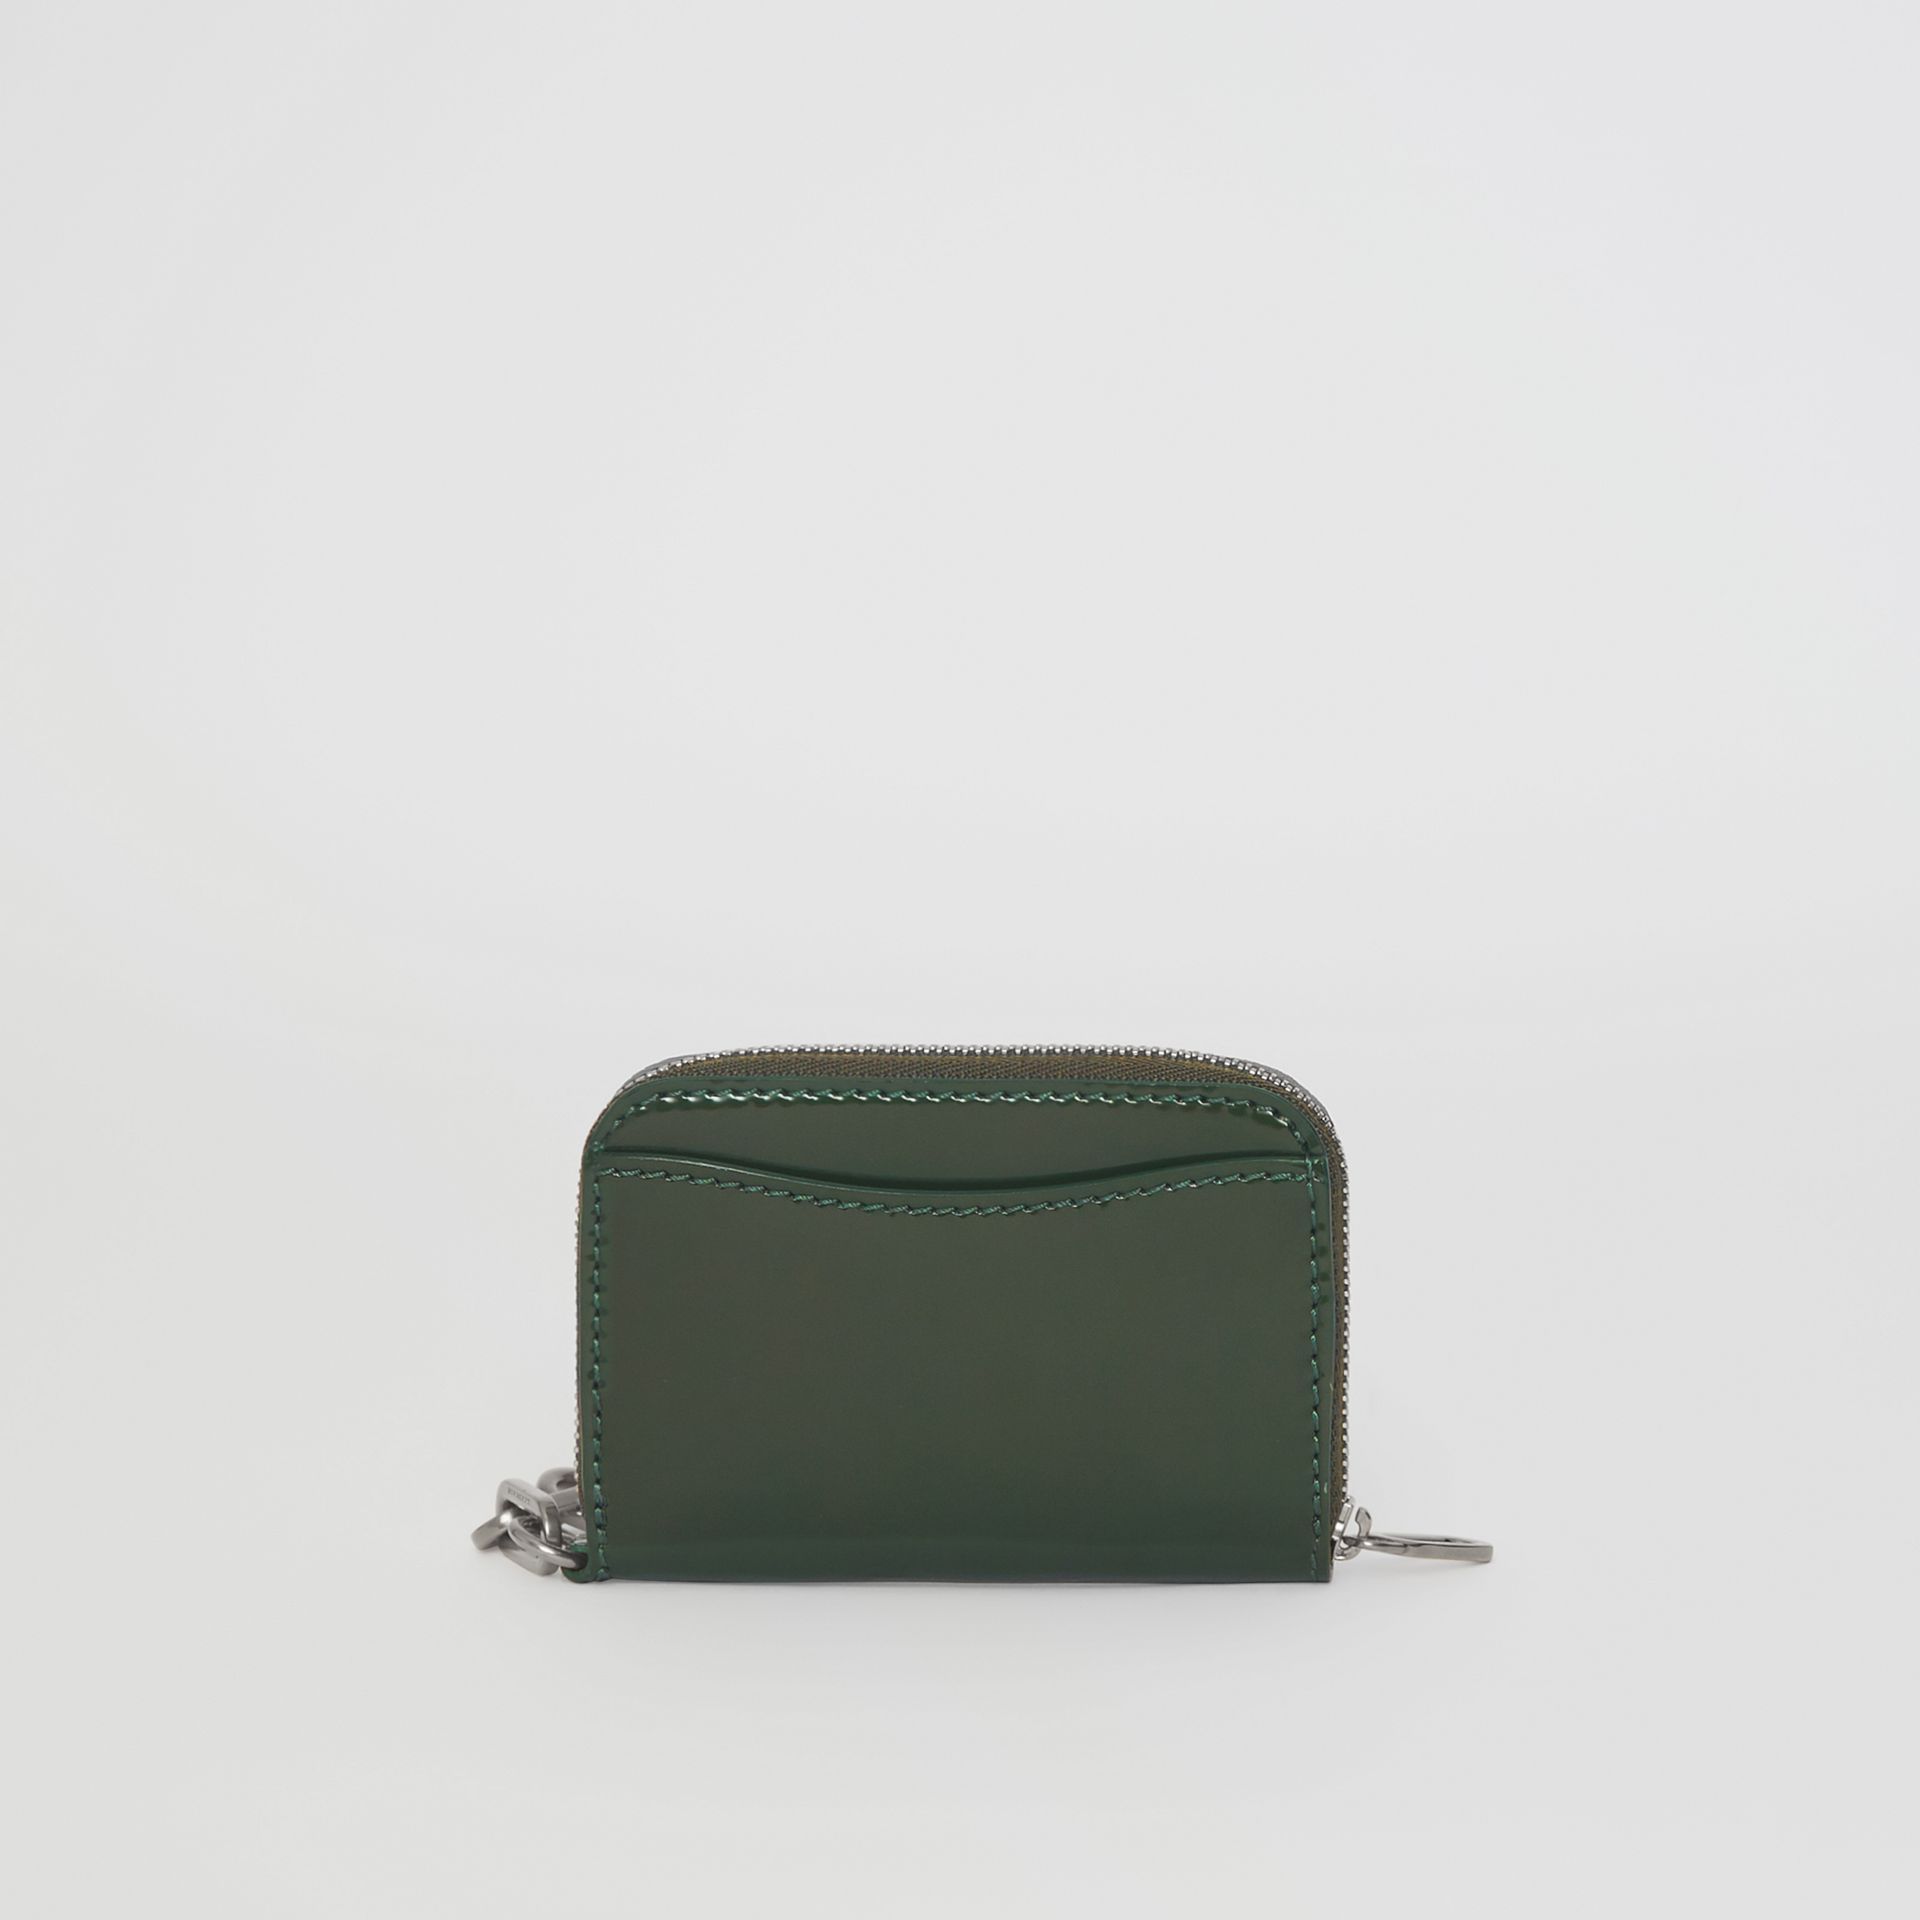 Link Detail Patent Leather Ziparound Wallet in Dark Forest Green - Women | Burberry - gallery image 5